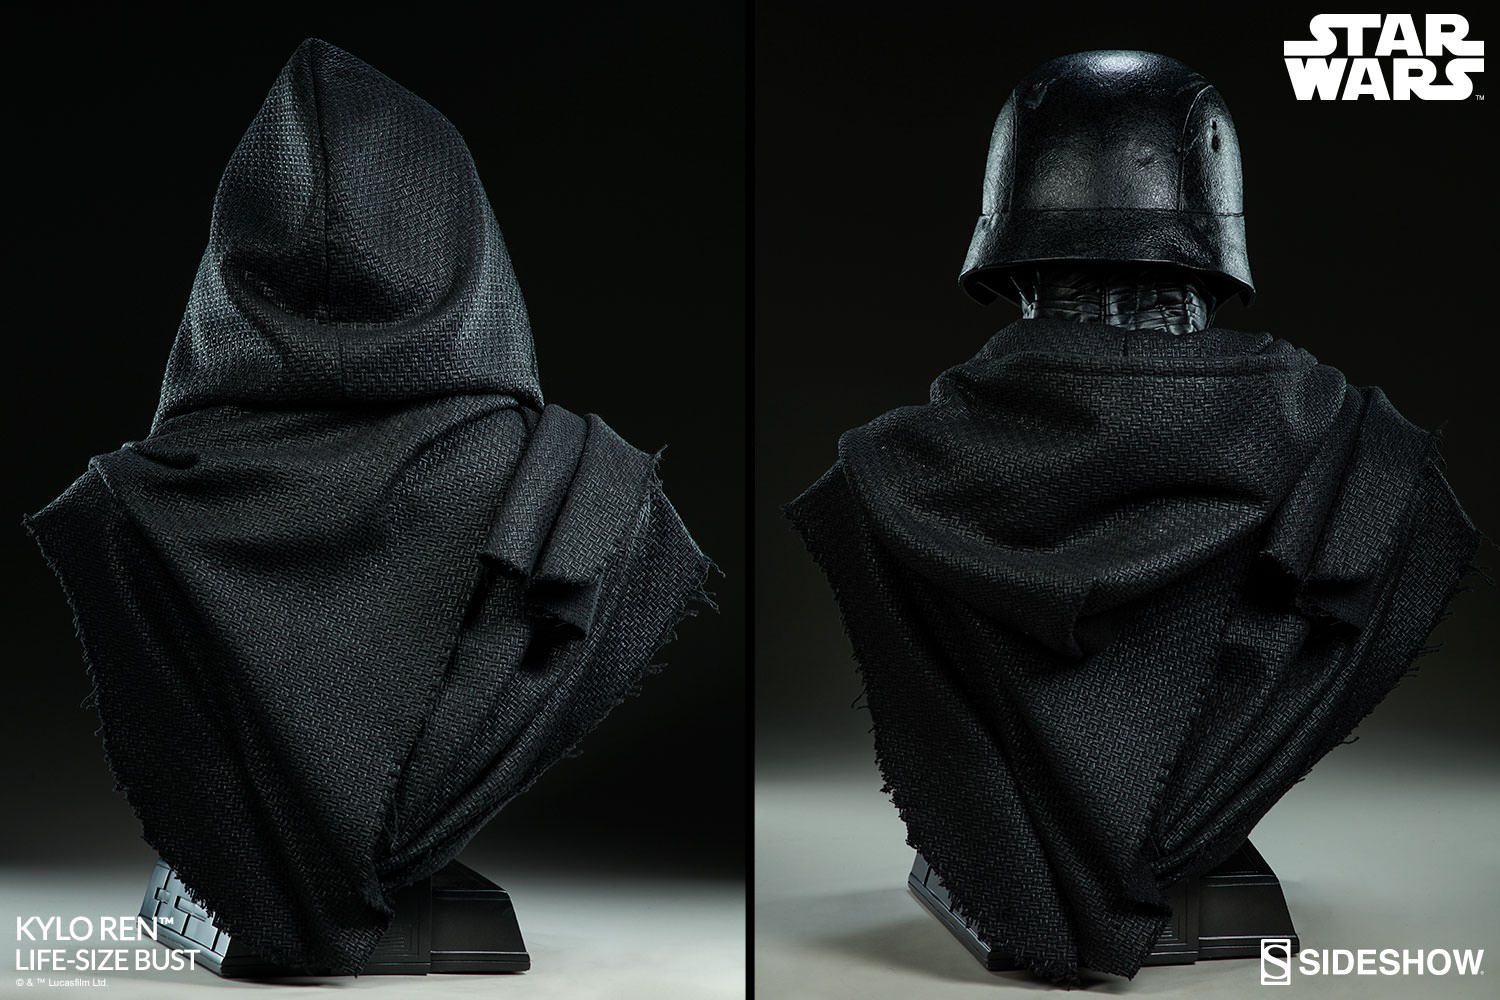 Kylo-Ren-Life-Size-Bust-009